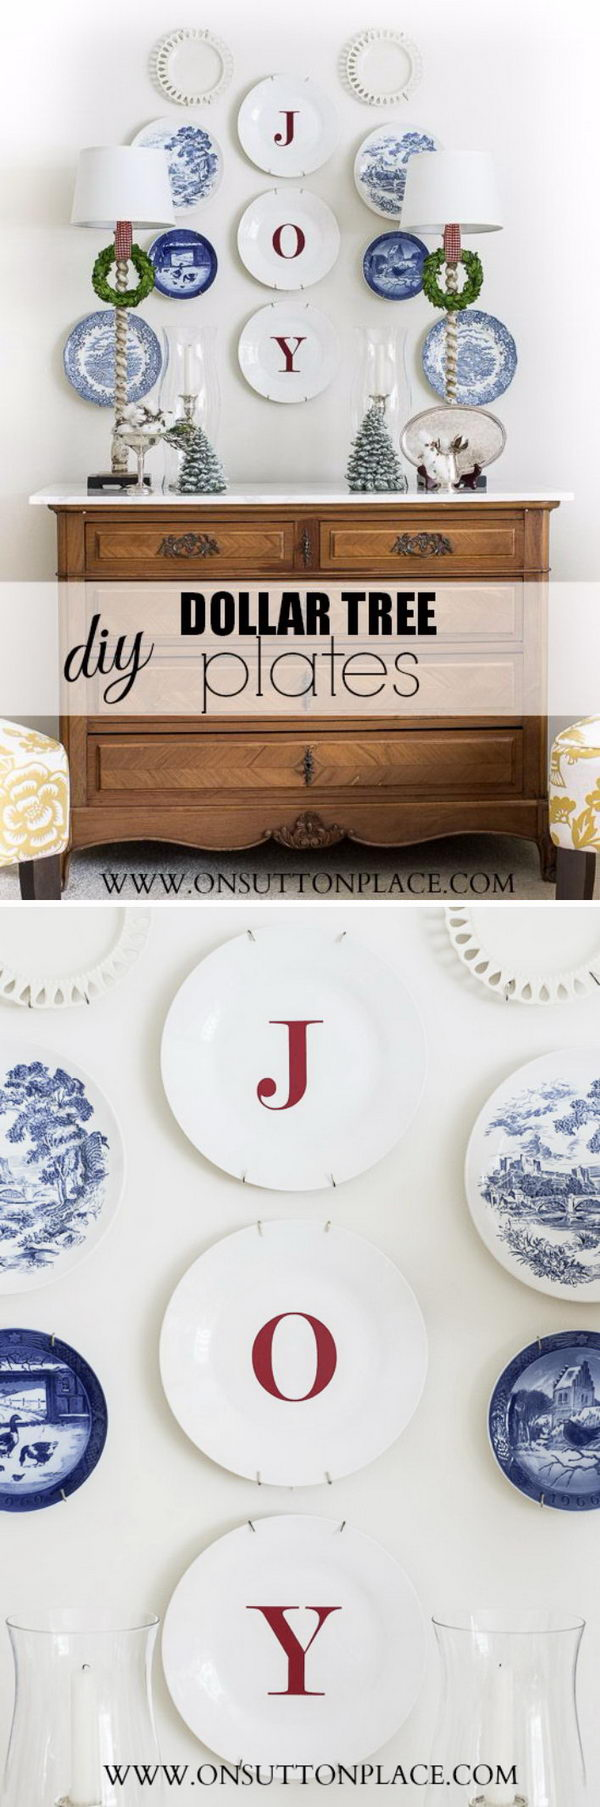 DIY Dollar Tree JOY Plates with a Super Simple Decal and Basic White Plates.